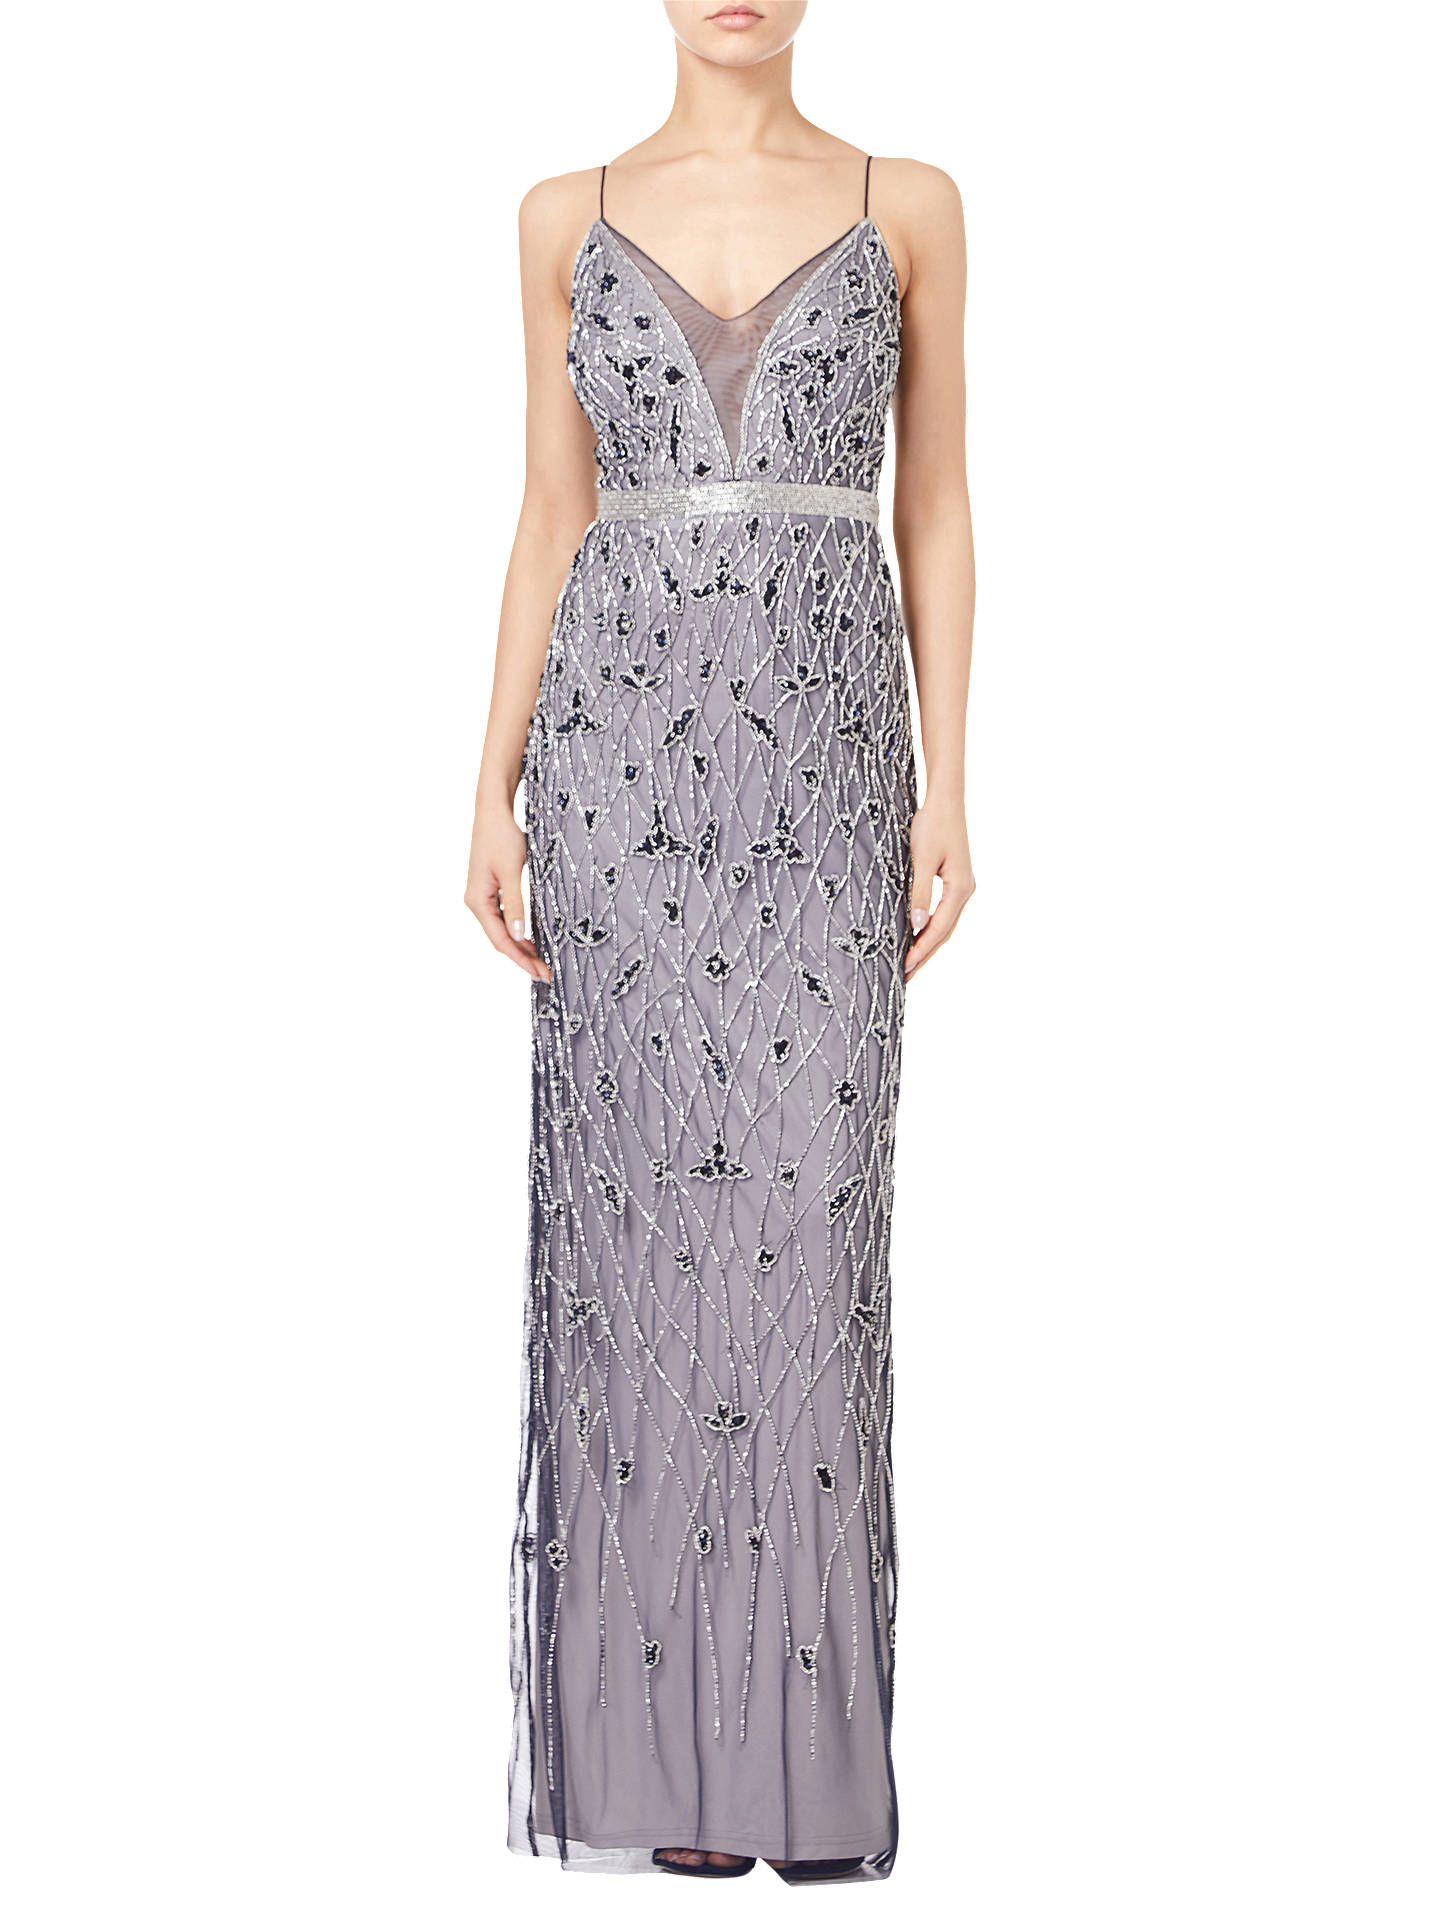 BuyAdrianna Papell Beaded Column Dress, Navy/Silver, 12 Online at johnlewis.com